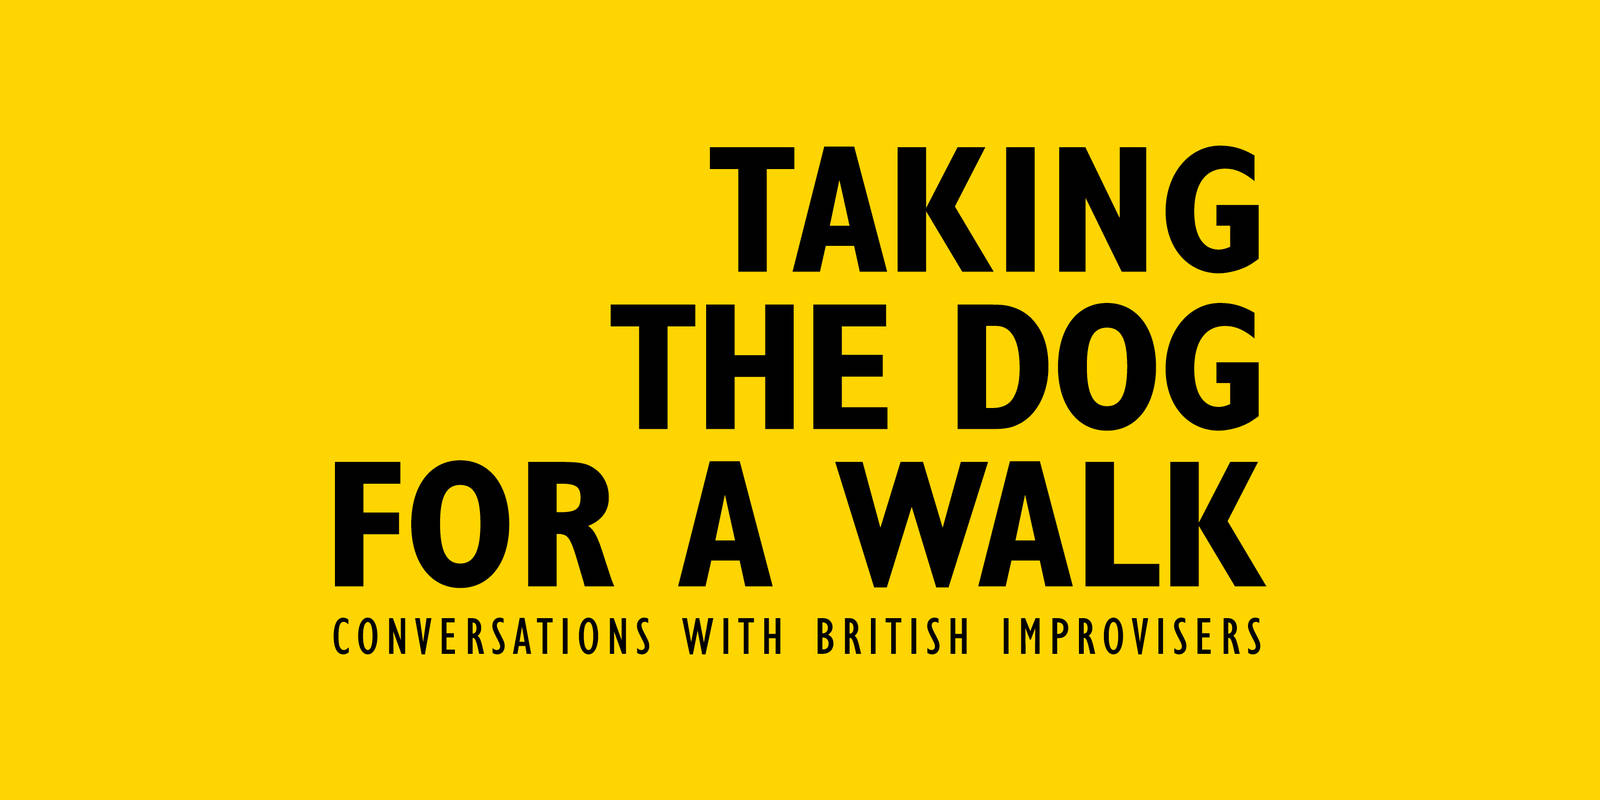 Taking the Dog for a Walk: World Premiere